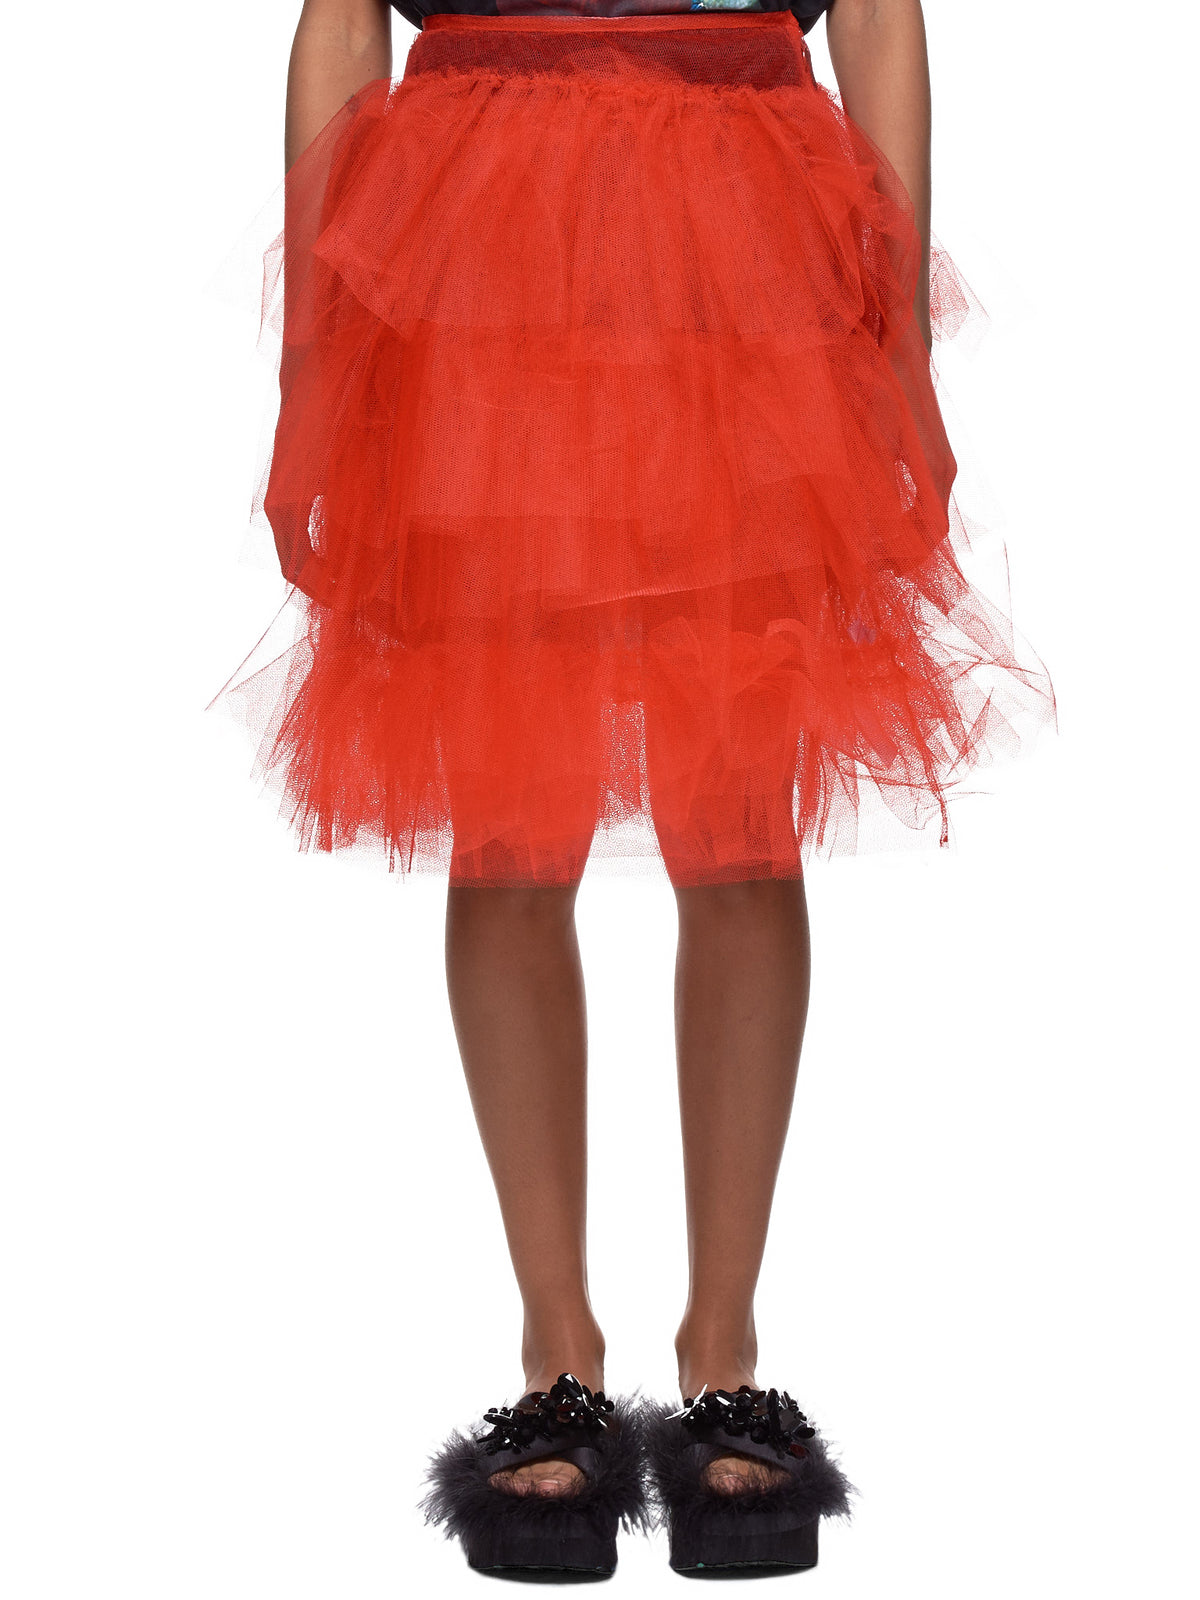 Layered Tulle Skirt (3313-0035-RED)